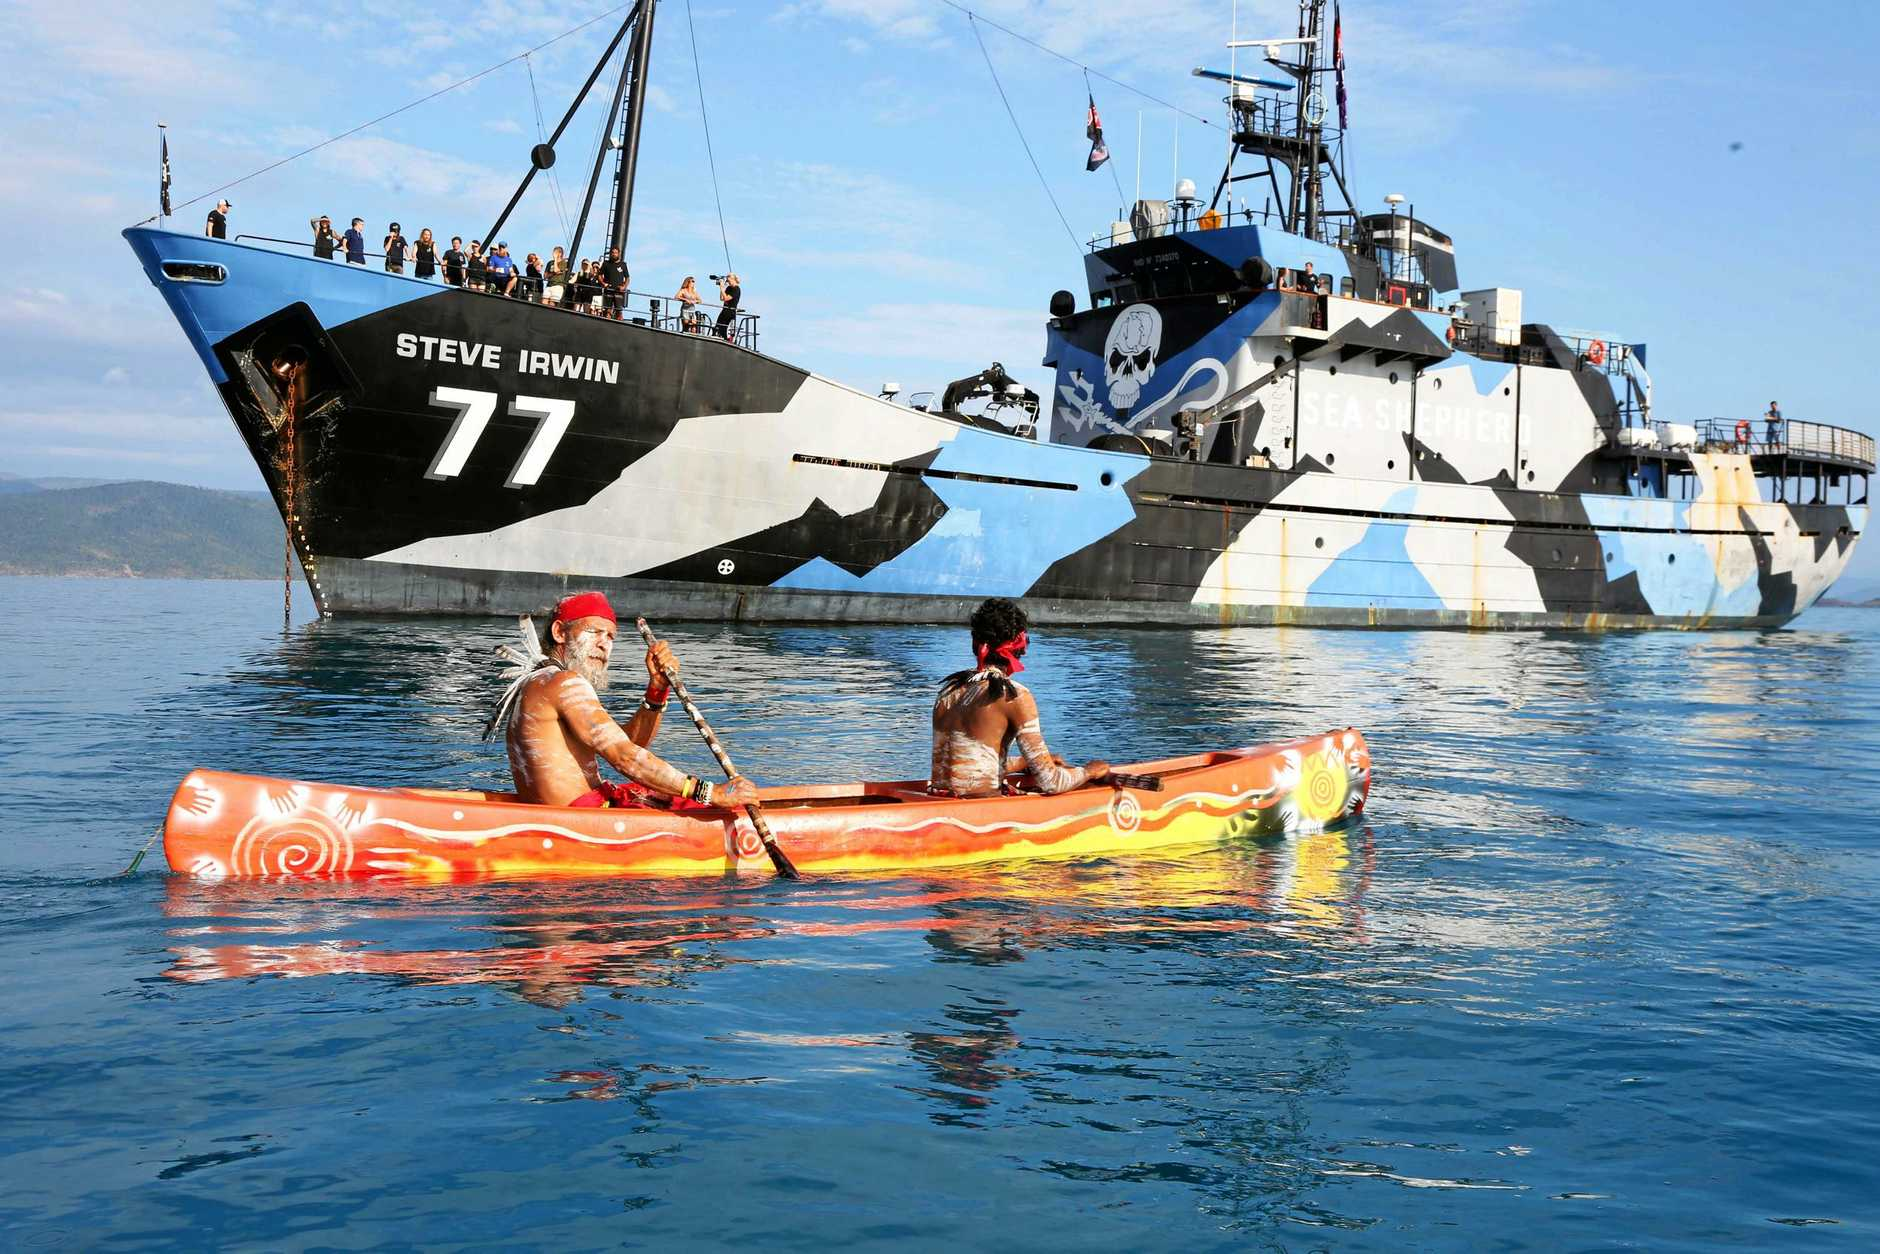 Ken Peters-Dodd of the Widi people officially welcome the crew of the Steve Irwin to the Whitsundays.